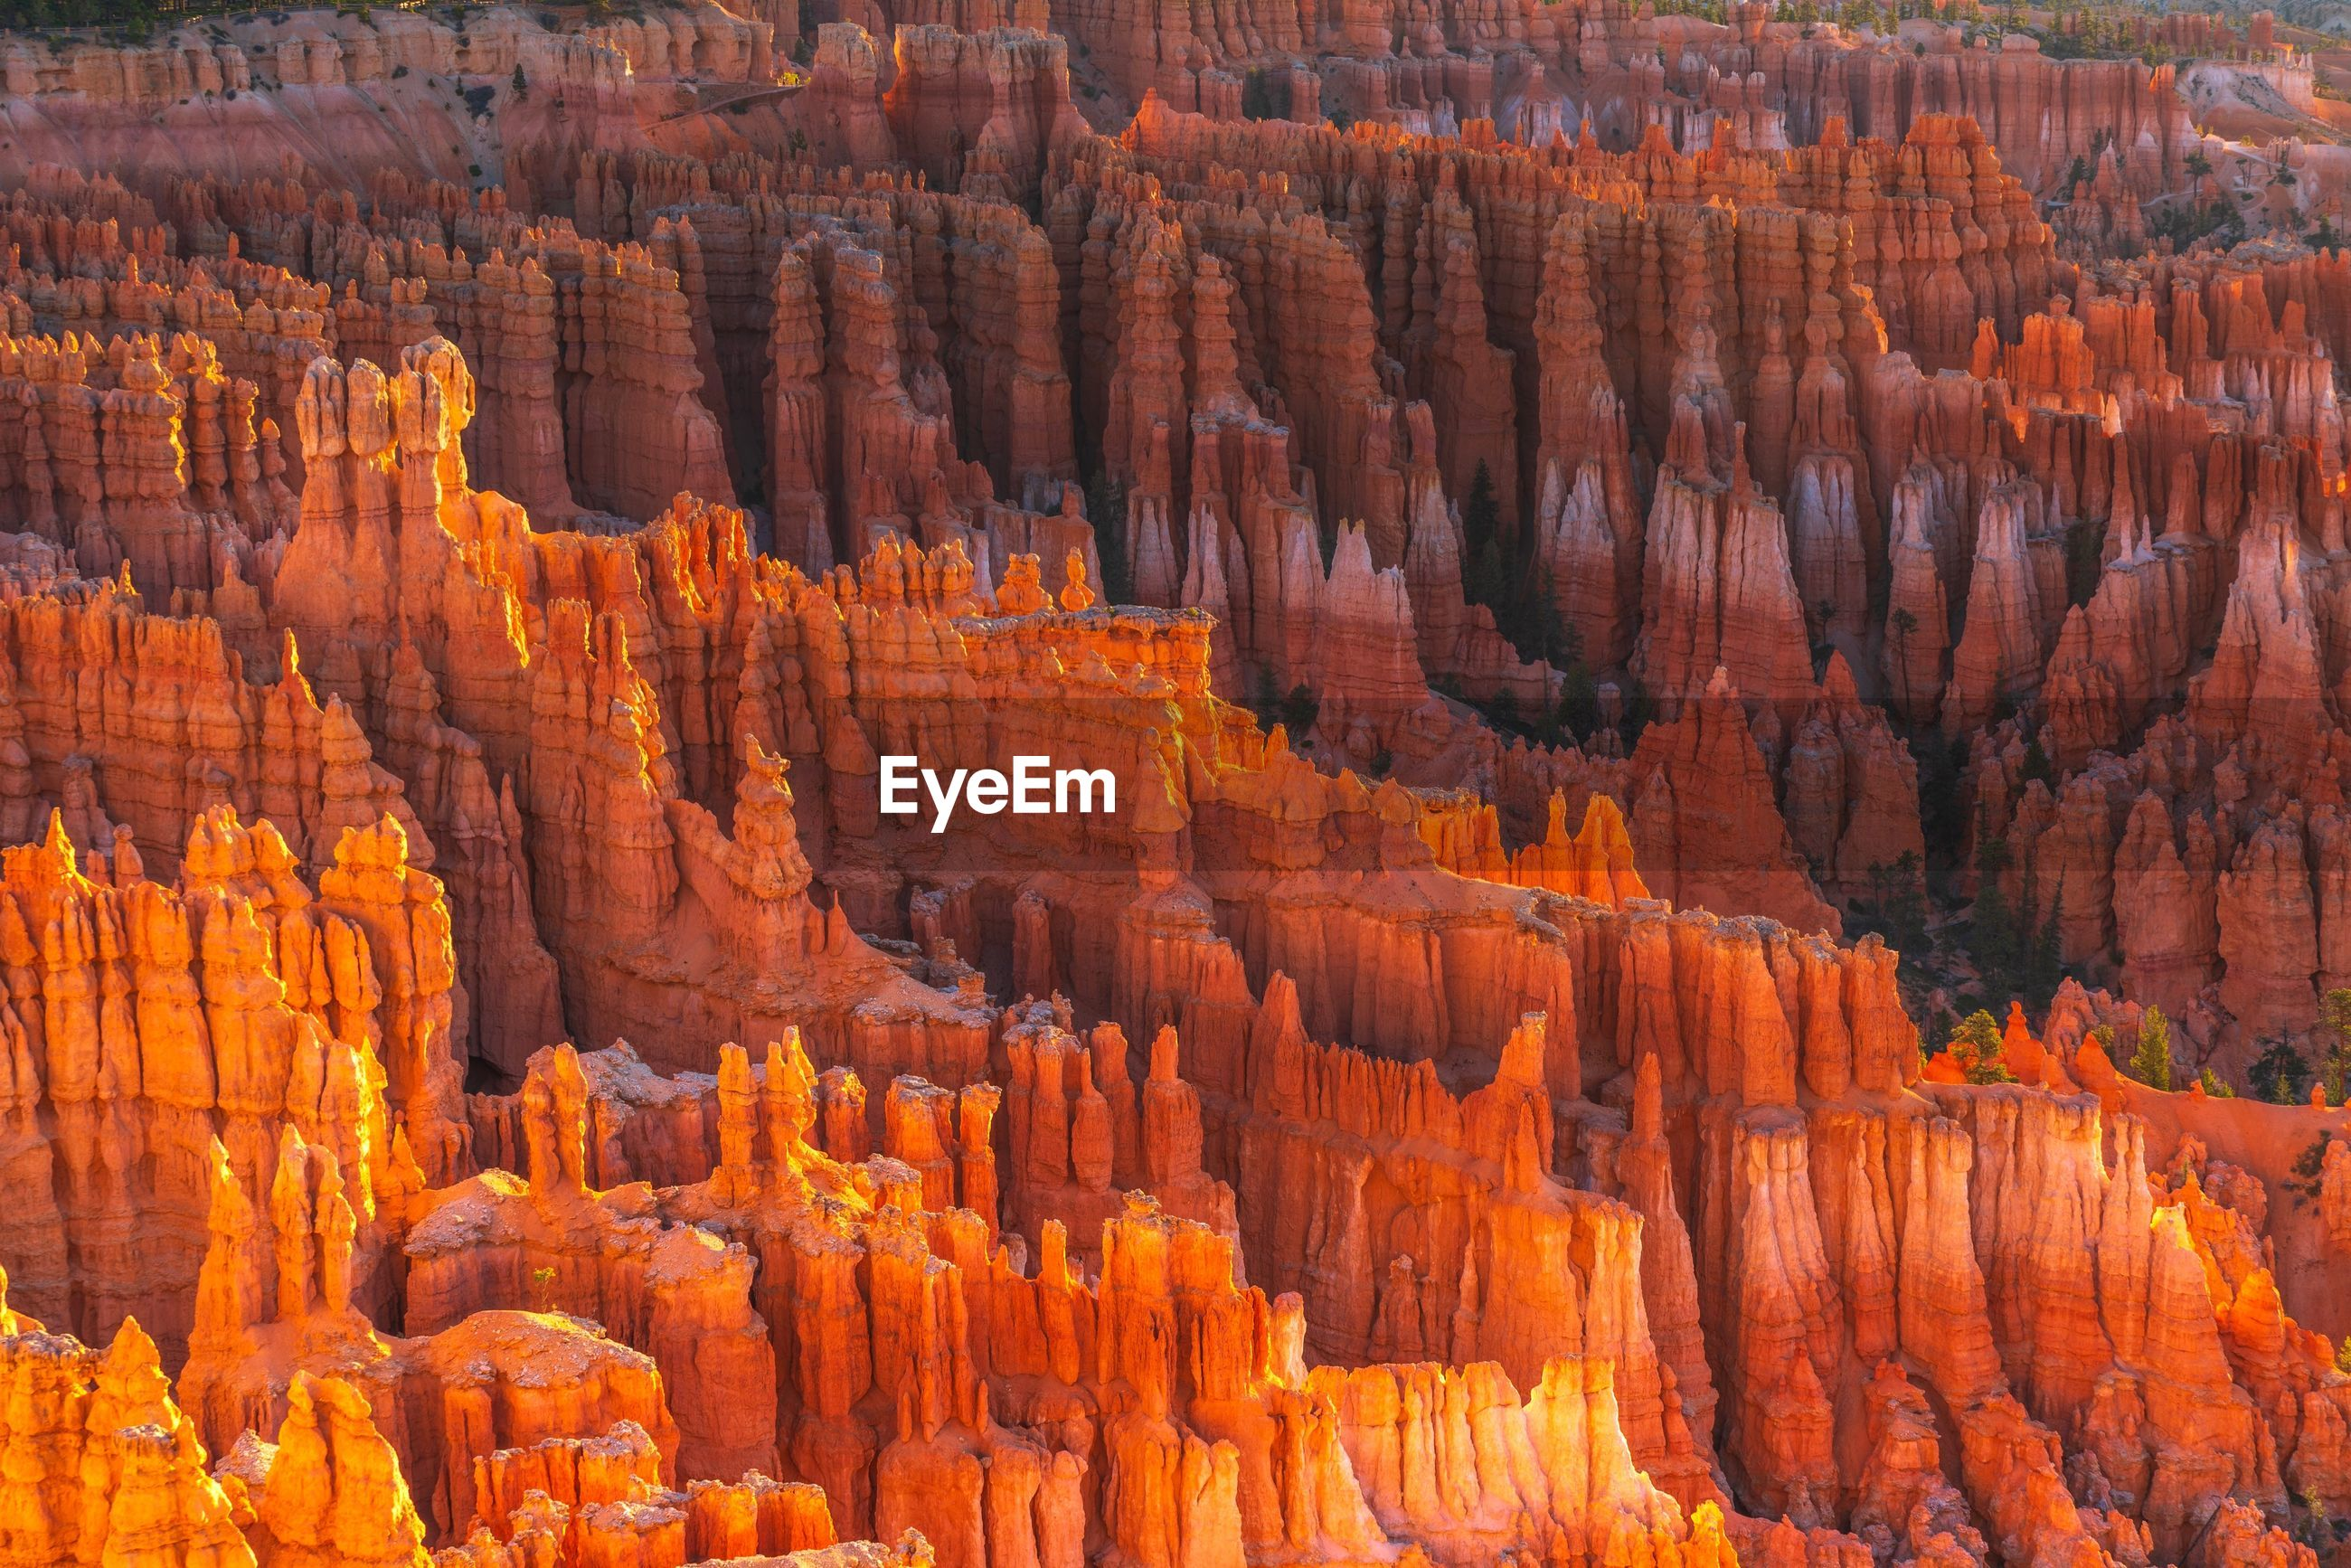 Full frame shot of bryce canyon national park